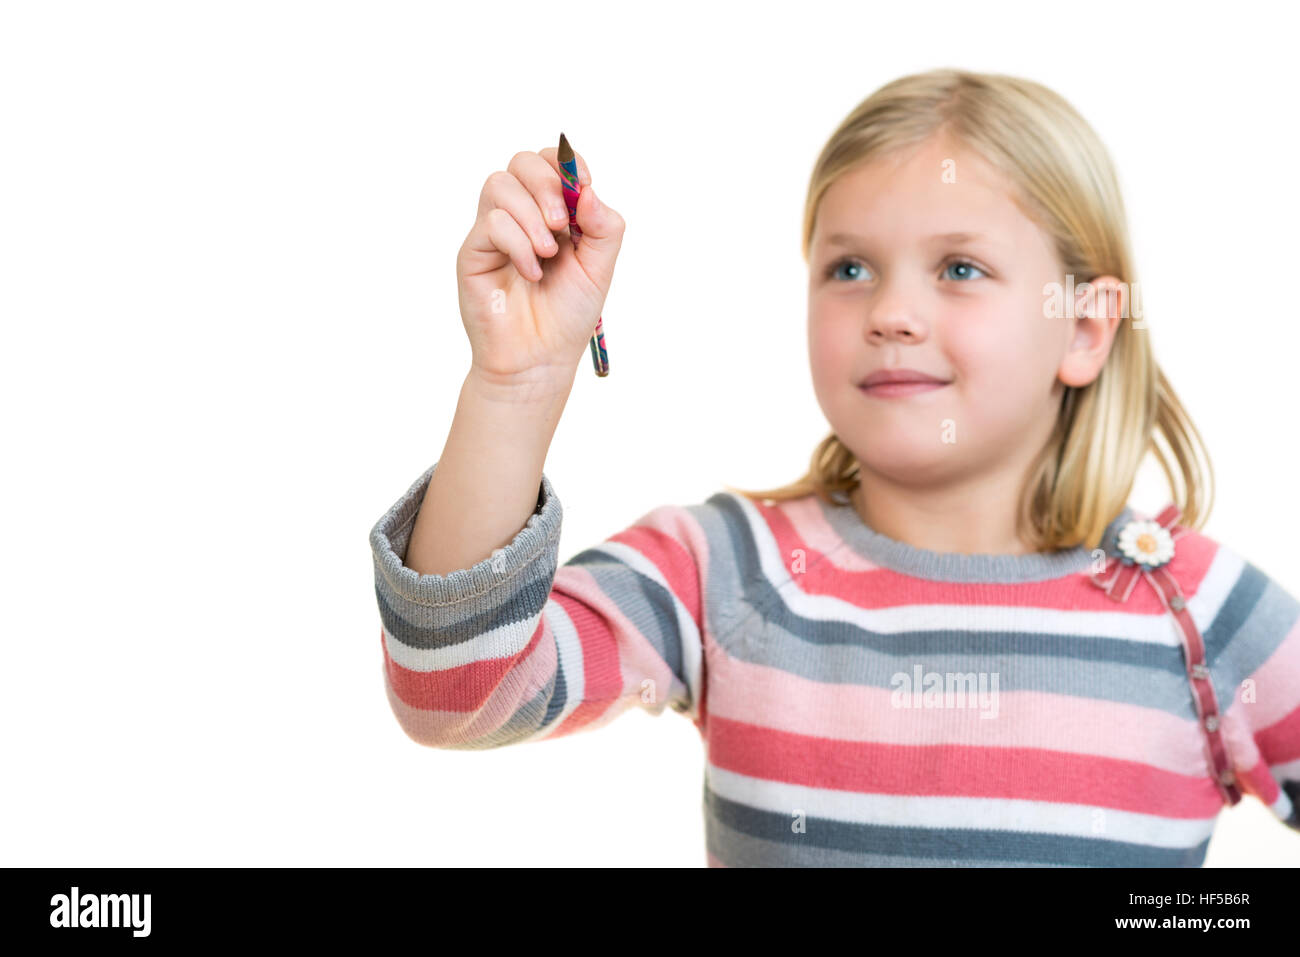 cute little girl drawing in the air or imaginary screen - Stock Image